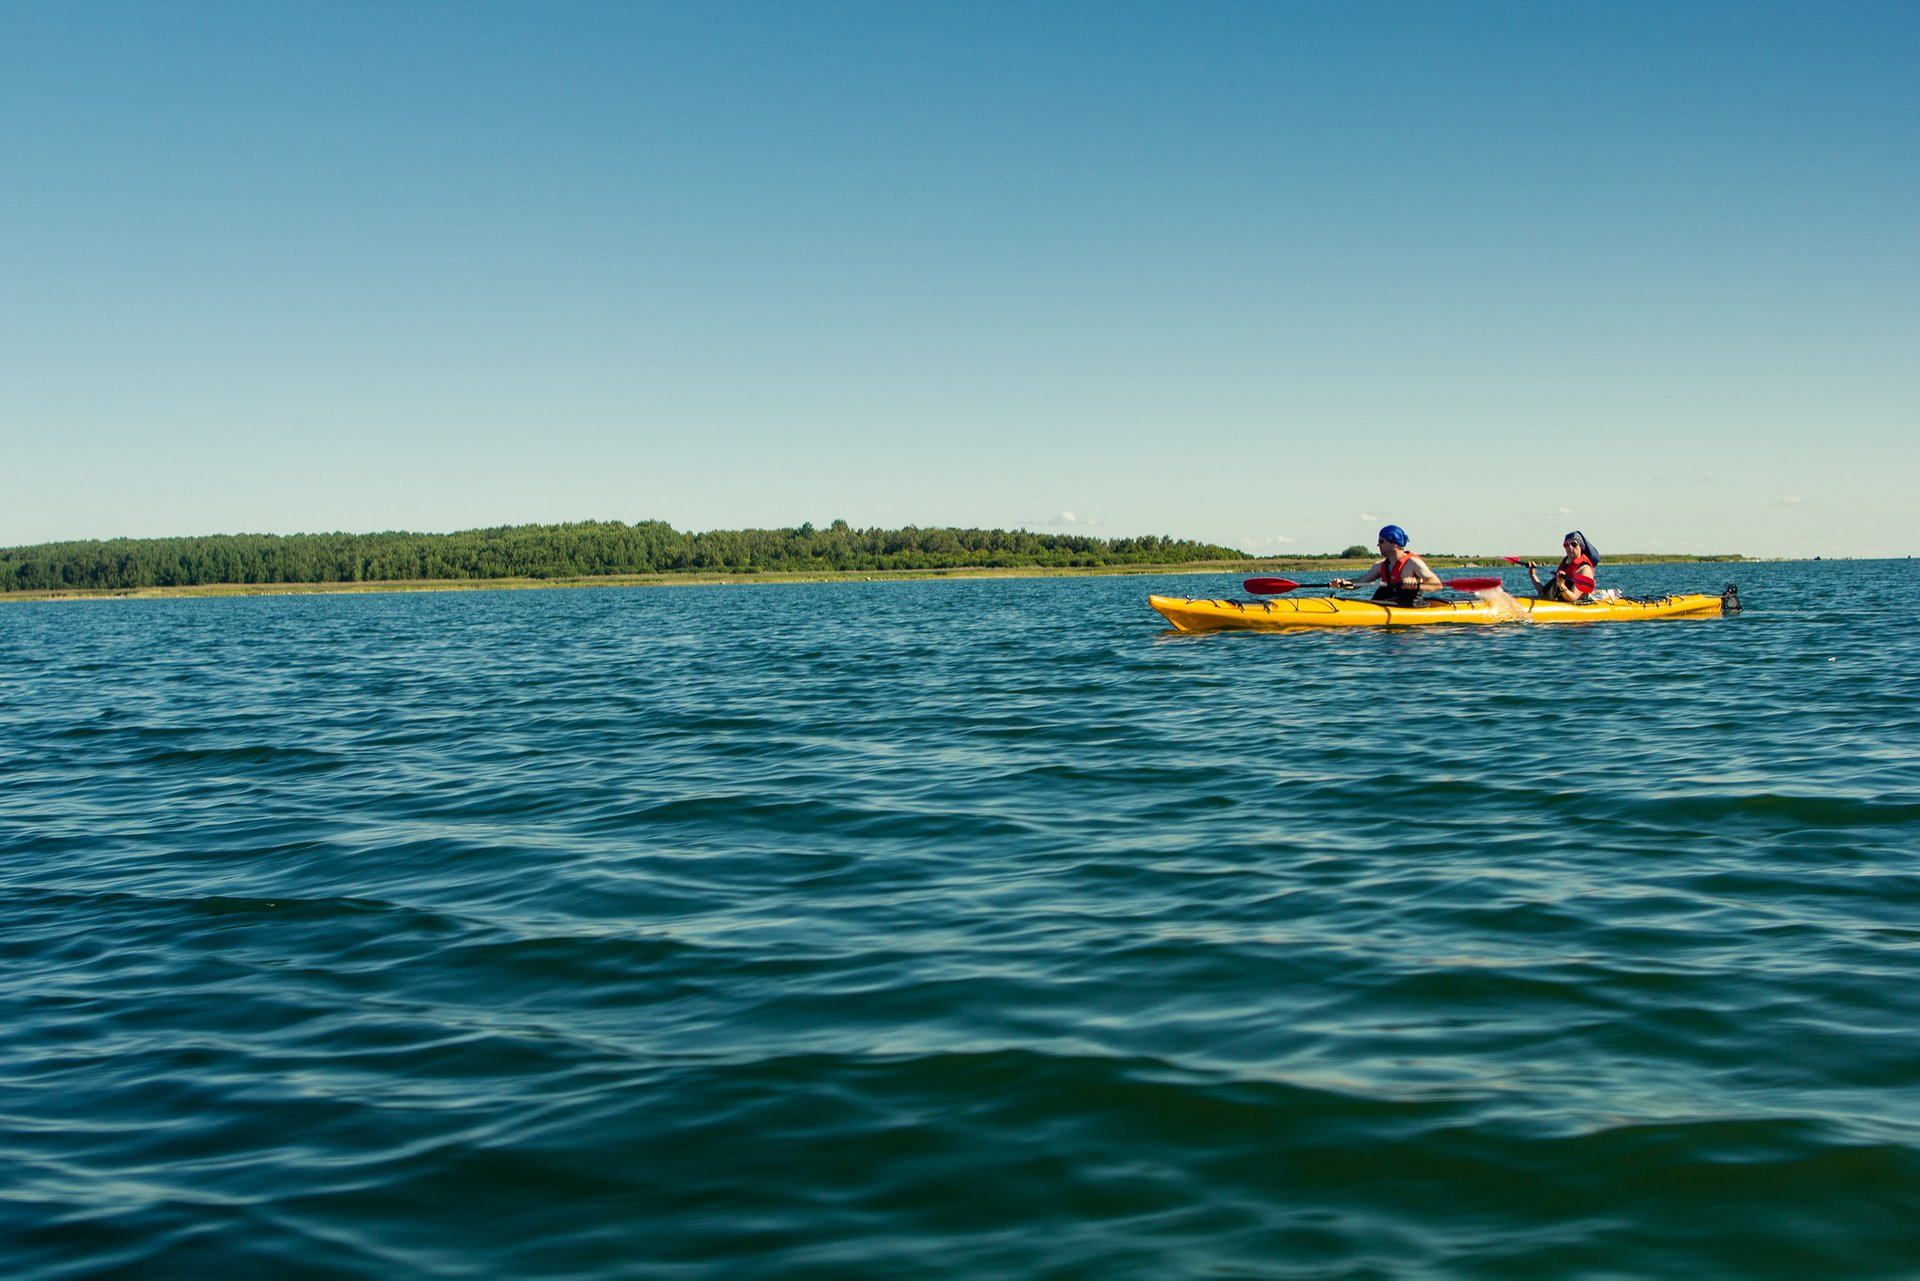 Kayaking and Canoeing in Estonia - Best Season 2020